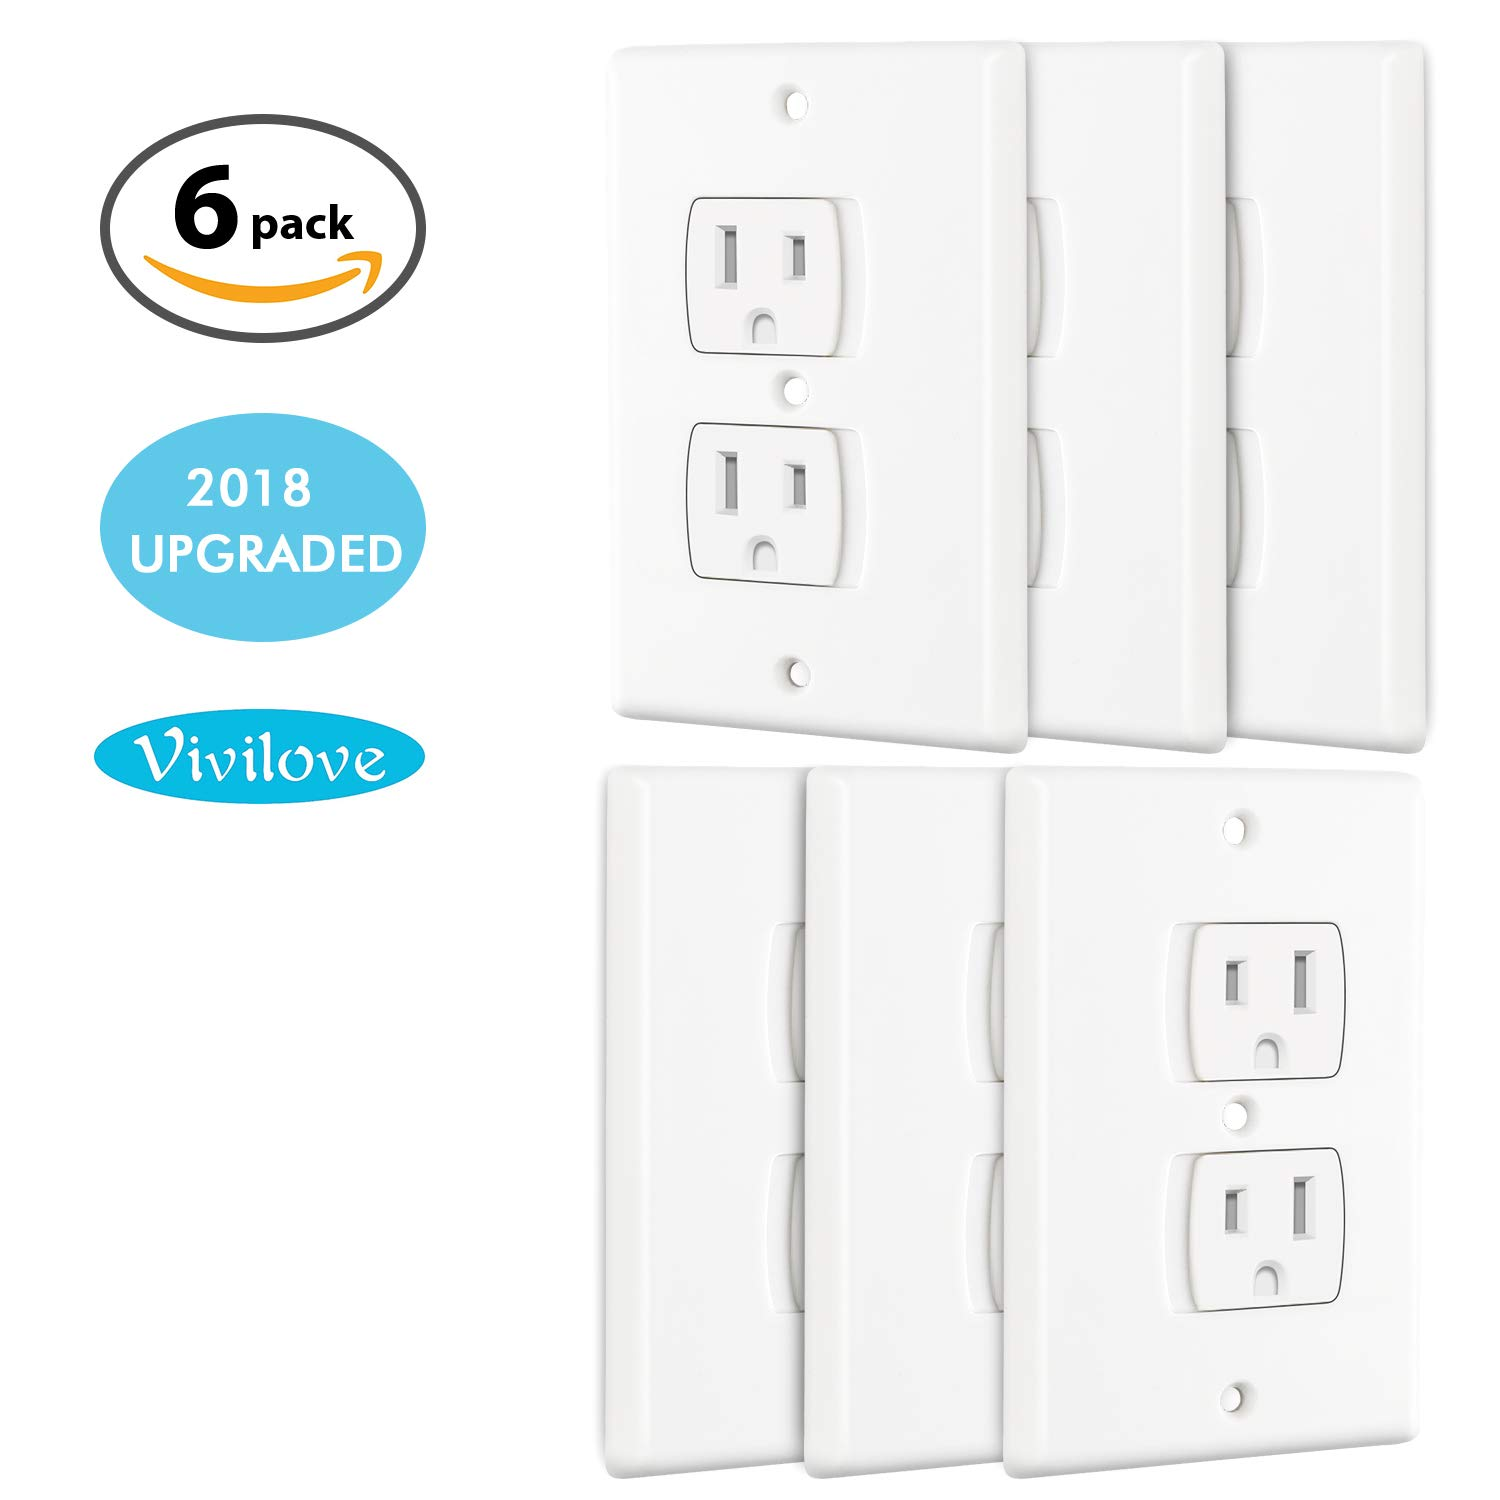 Self-Closing Wall Outlet Covers 6 Pack Universal Electric Socket Plugs Protector Baby Proofing Safety Guards, Retardant and BPA Free,Hardware Included, Easy to Install